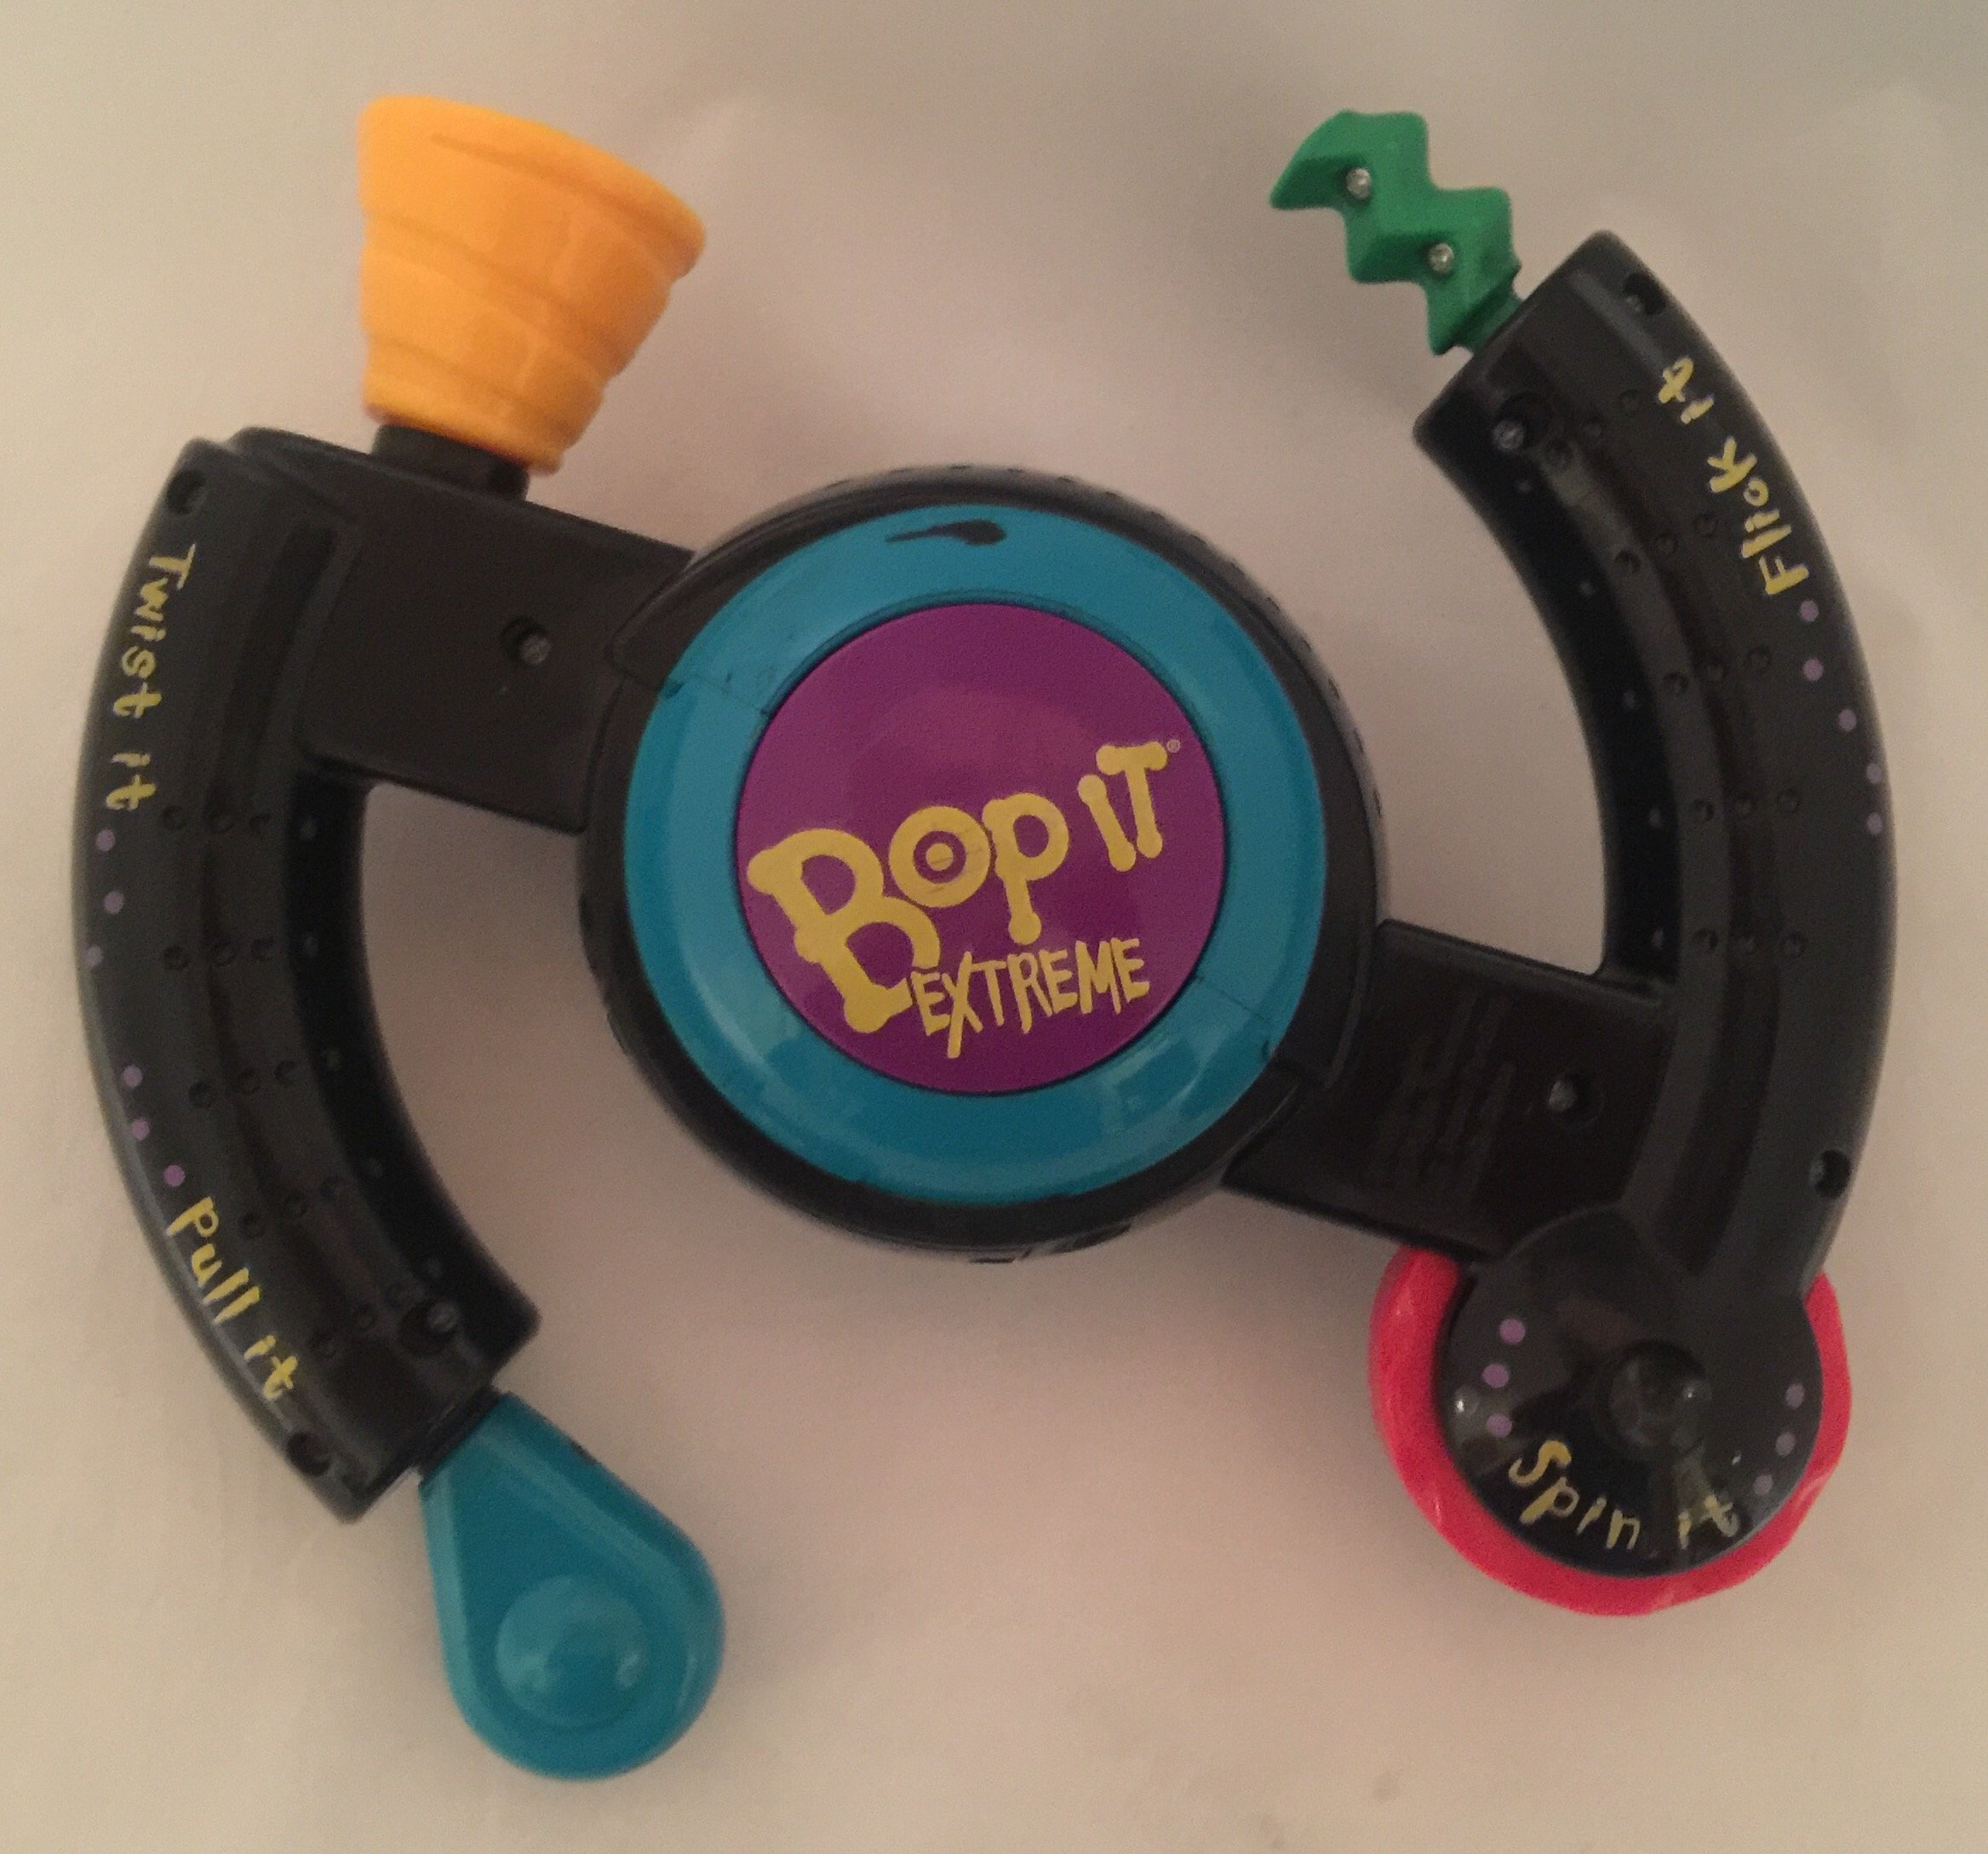 Bop It Extreme by Milton Bradley